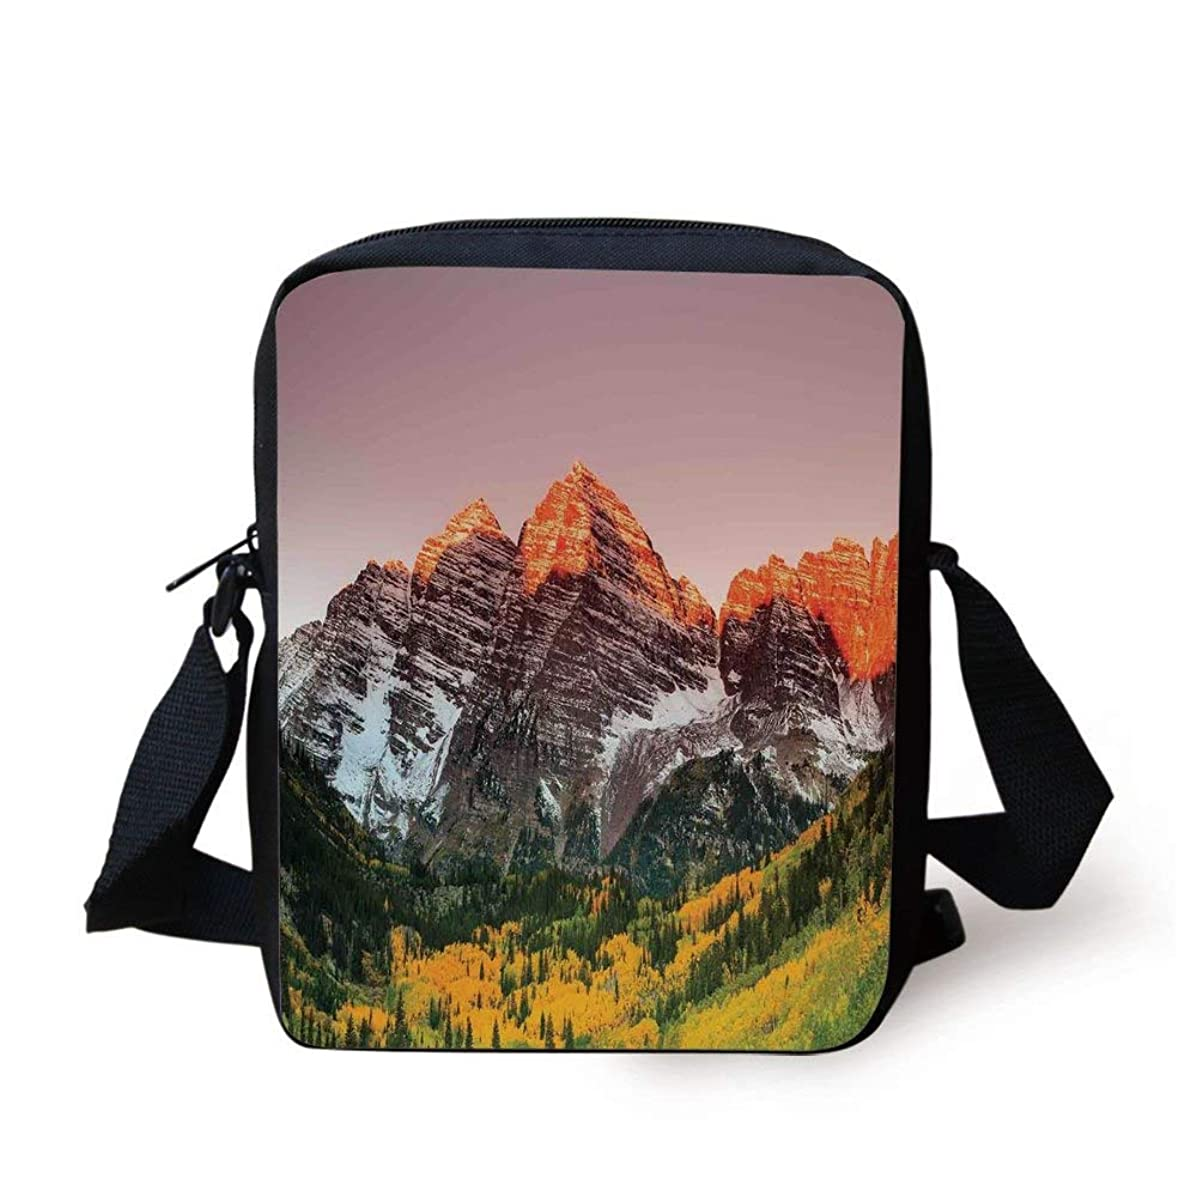 Apartment Decor,Scenic Western American Mountains on the Valley with Snowy Peaks at Sunset Time Landscape,Multi Print Kids Crossbody Messenger Bag Purse